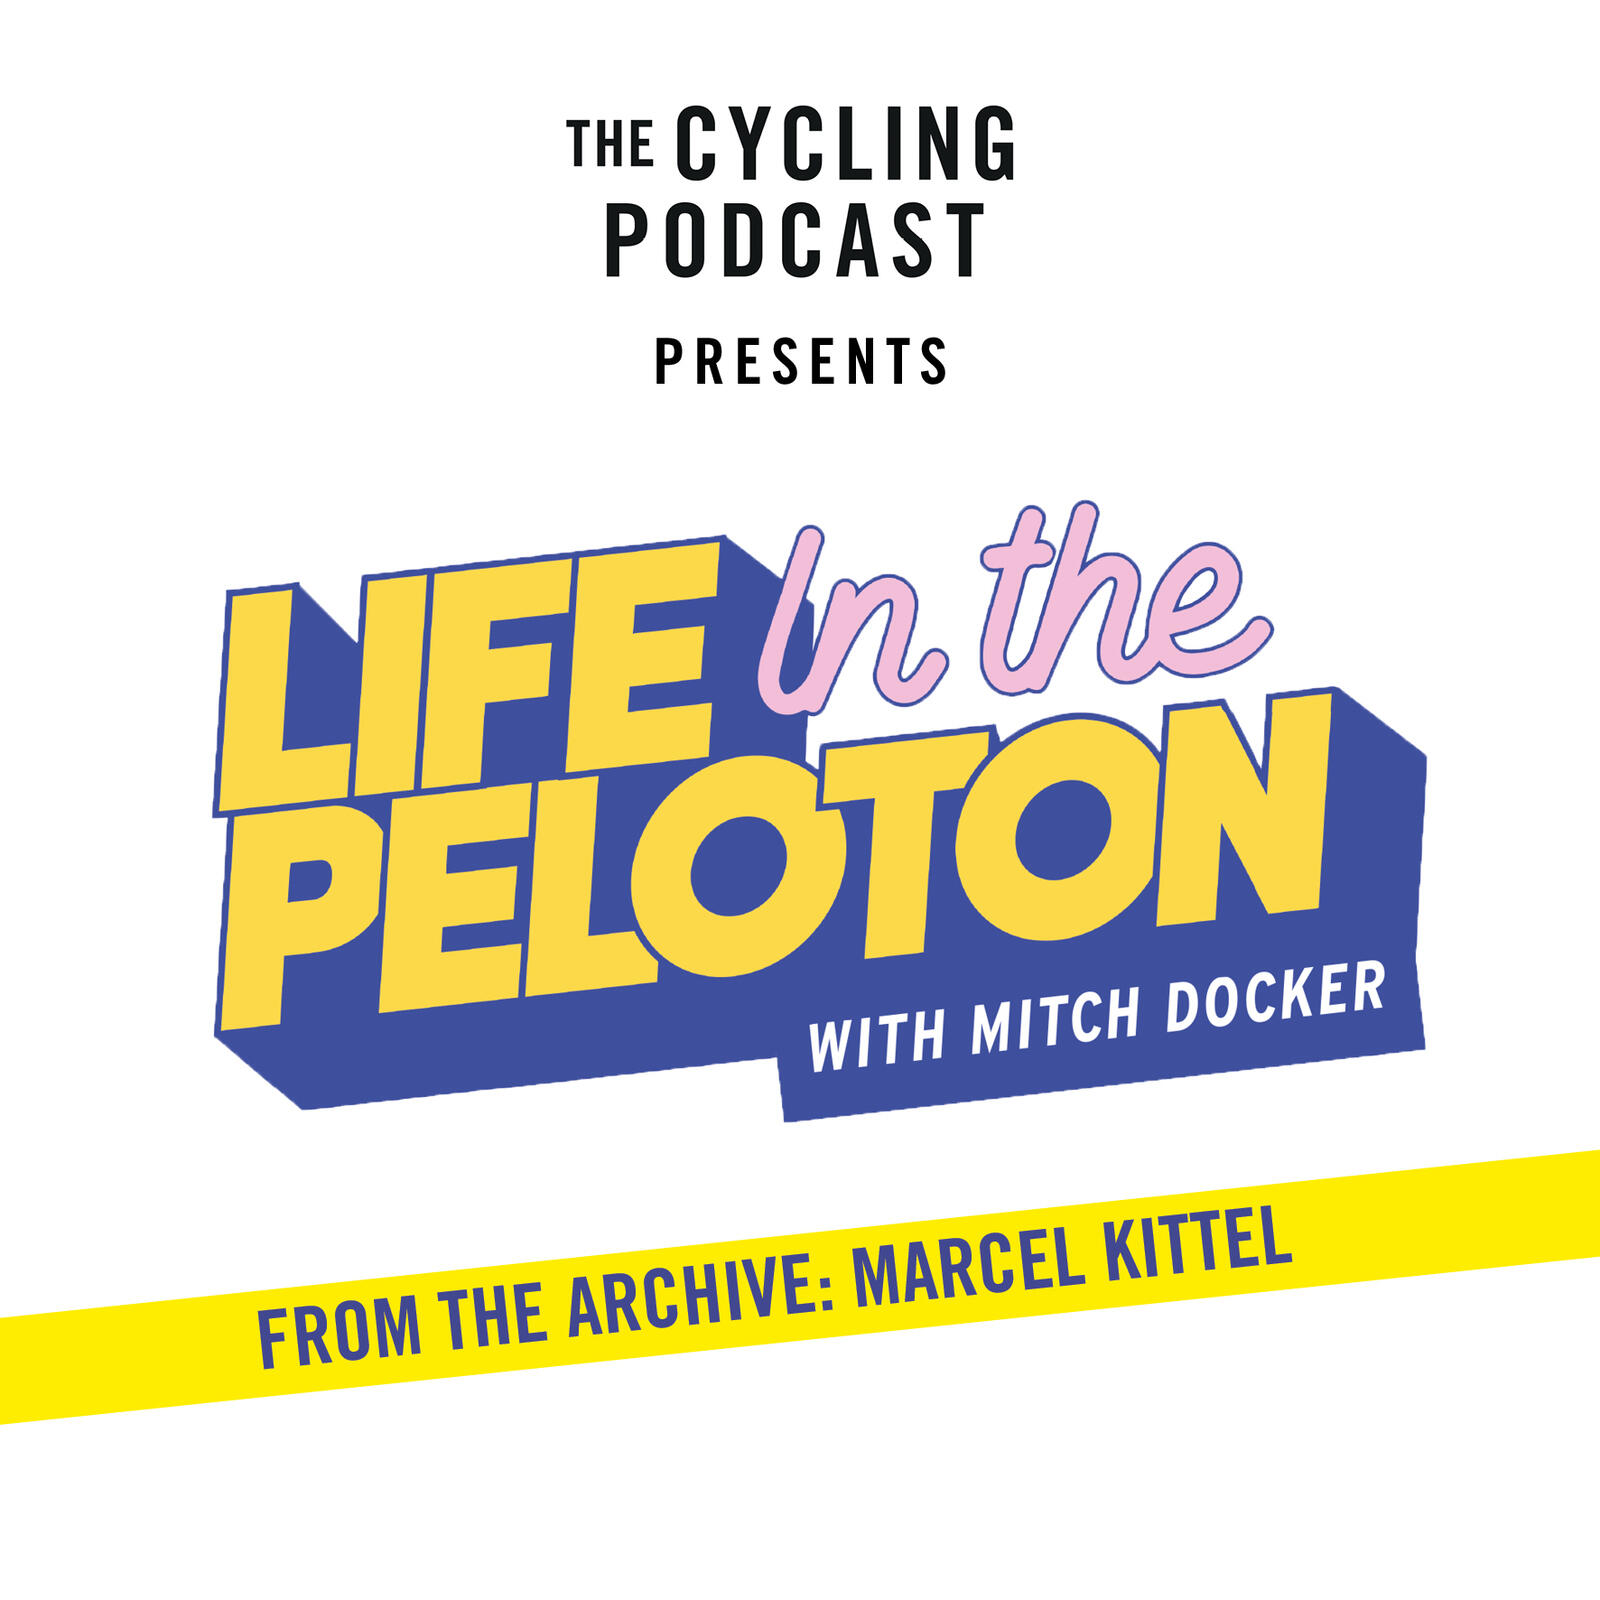 6: From the Life in the Peloton archive: Marcel Kittel